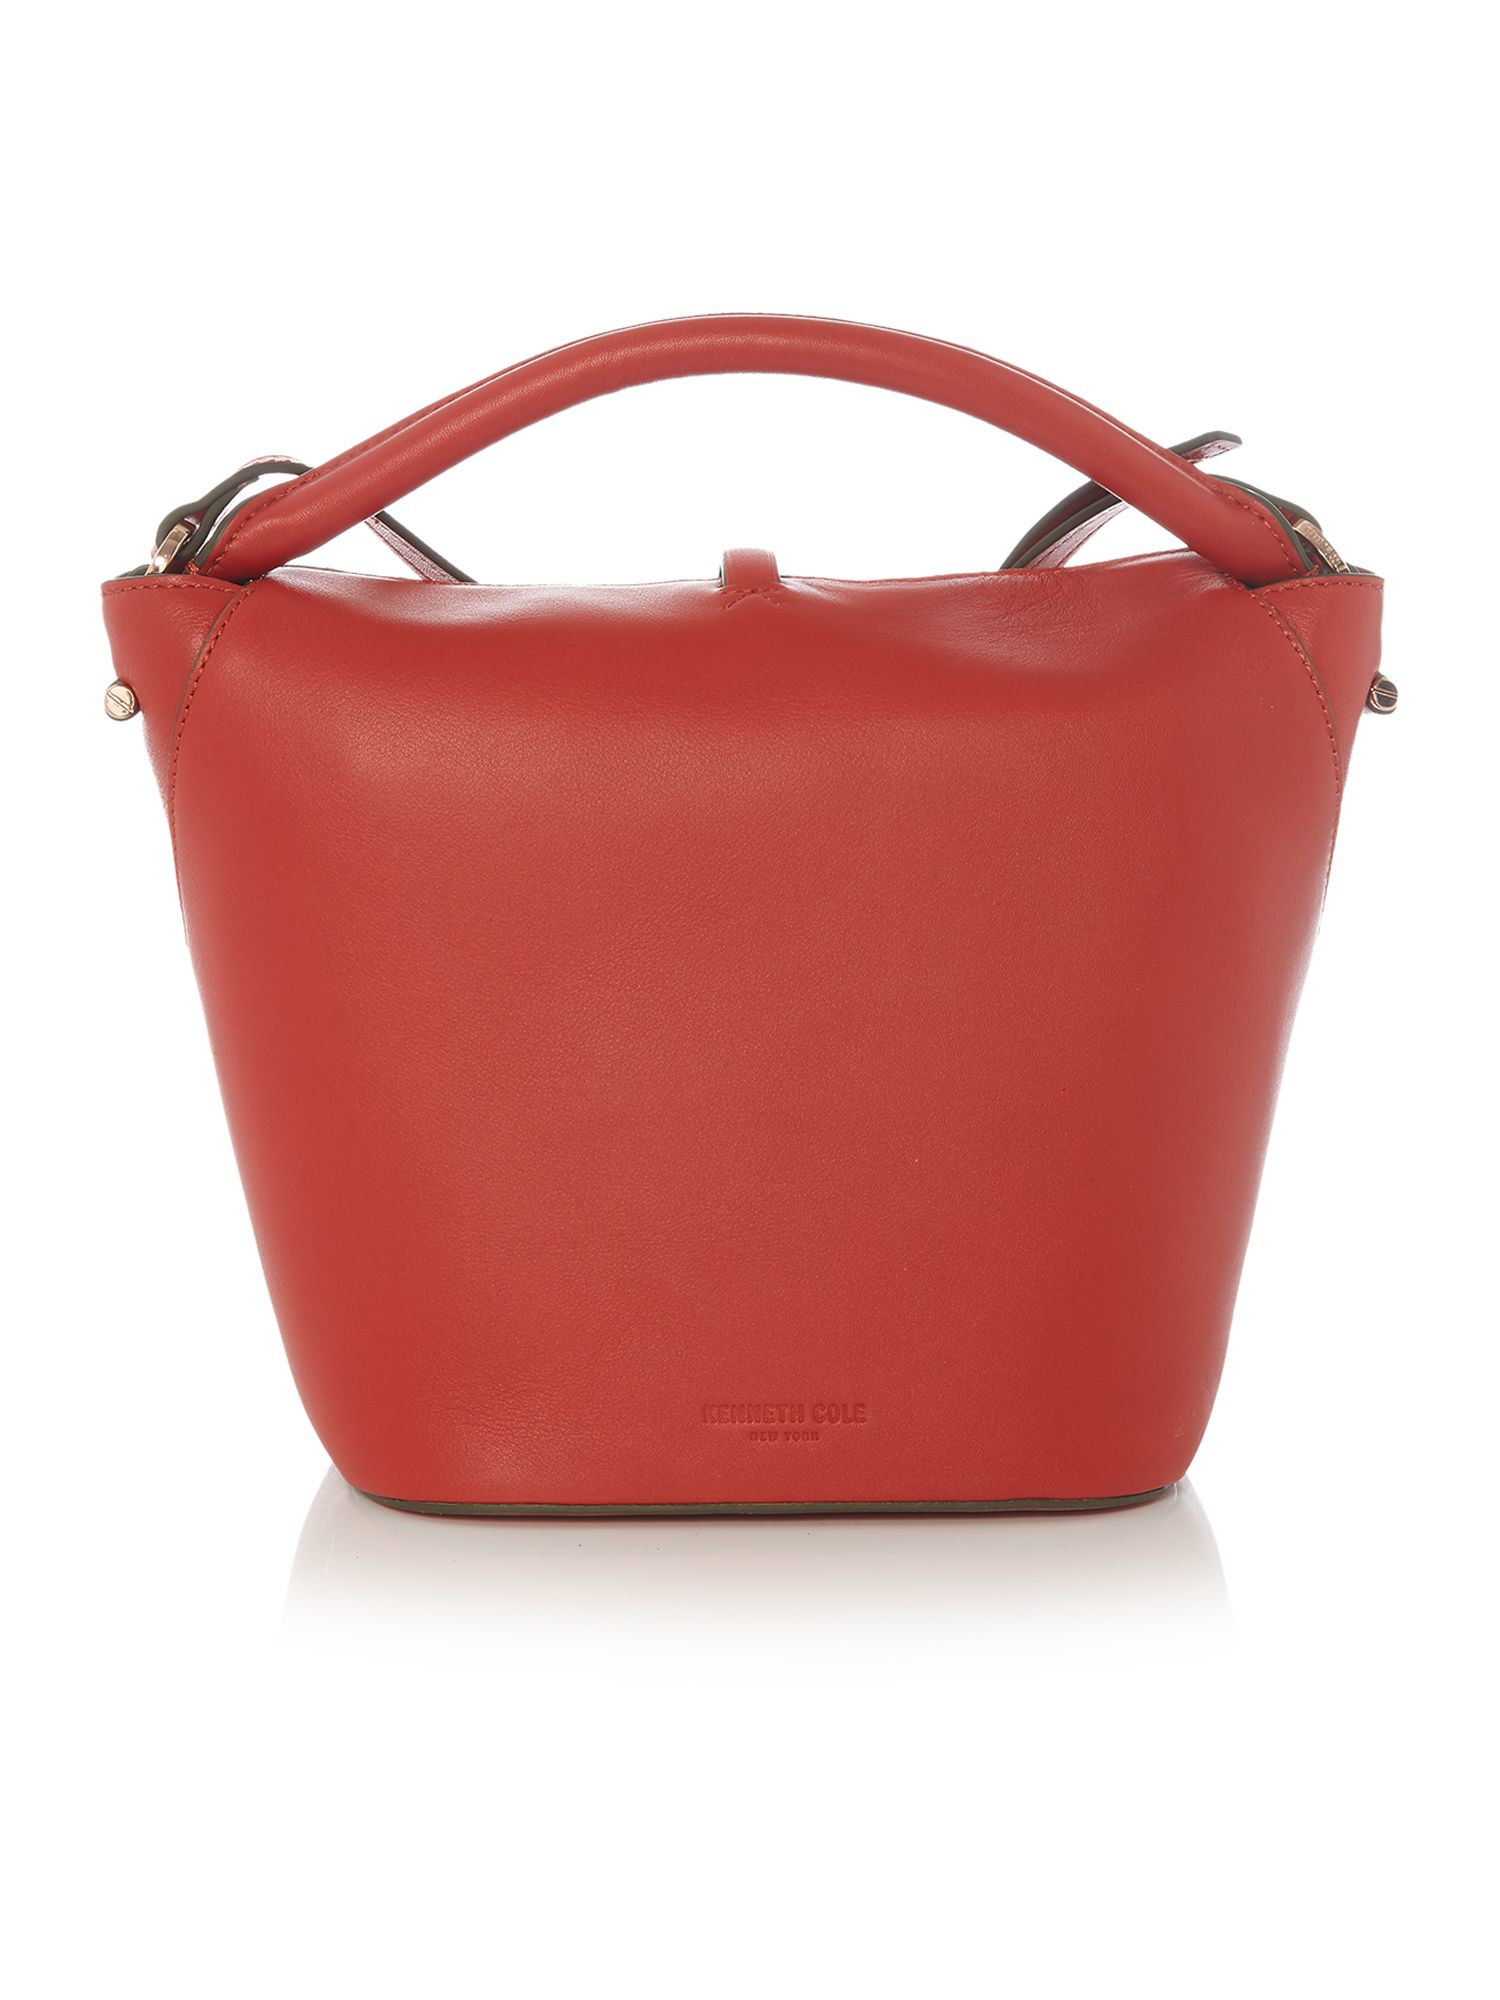 Kenneth Cole Leather Red Small Flapover Crossbody